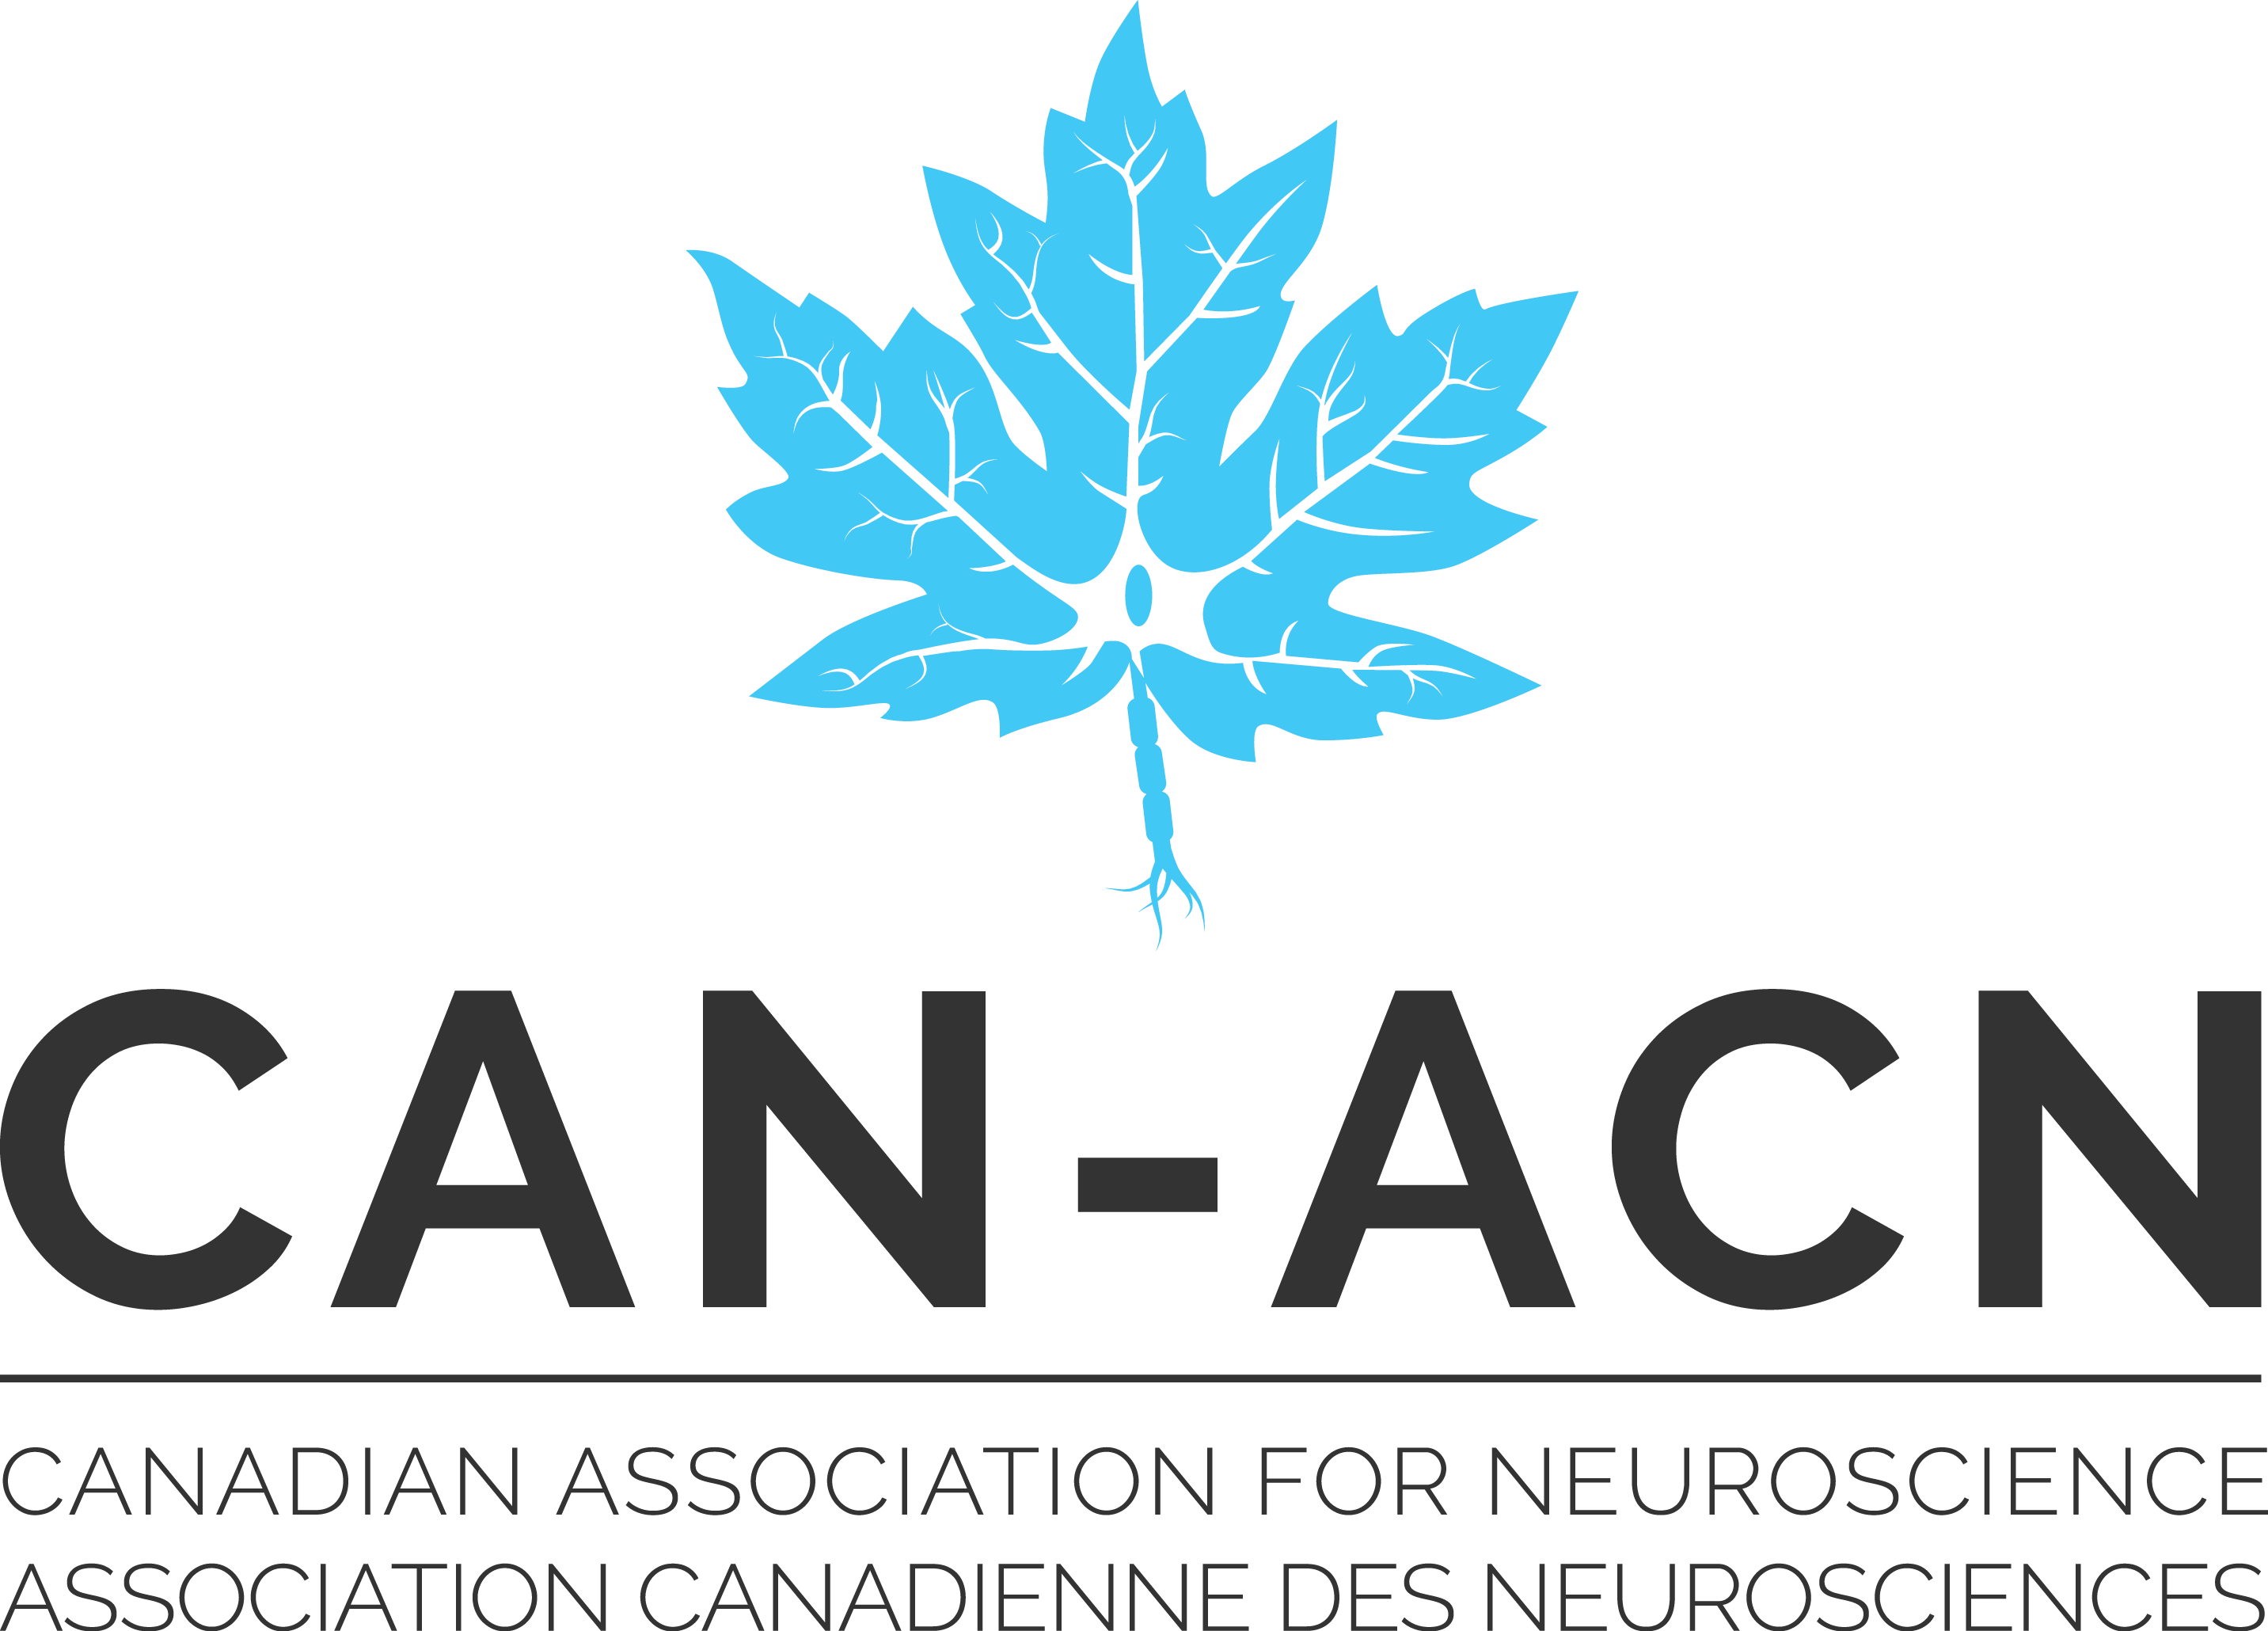 Canadian Association for Neuroscience